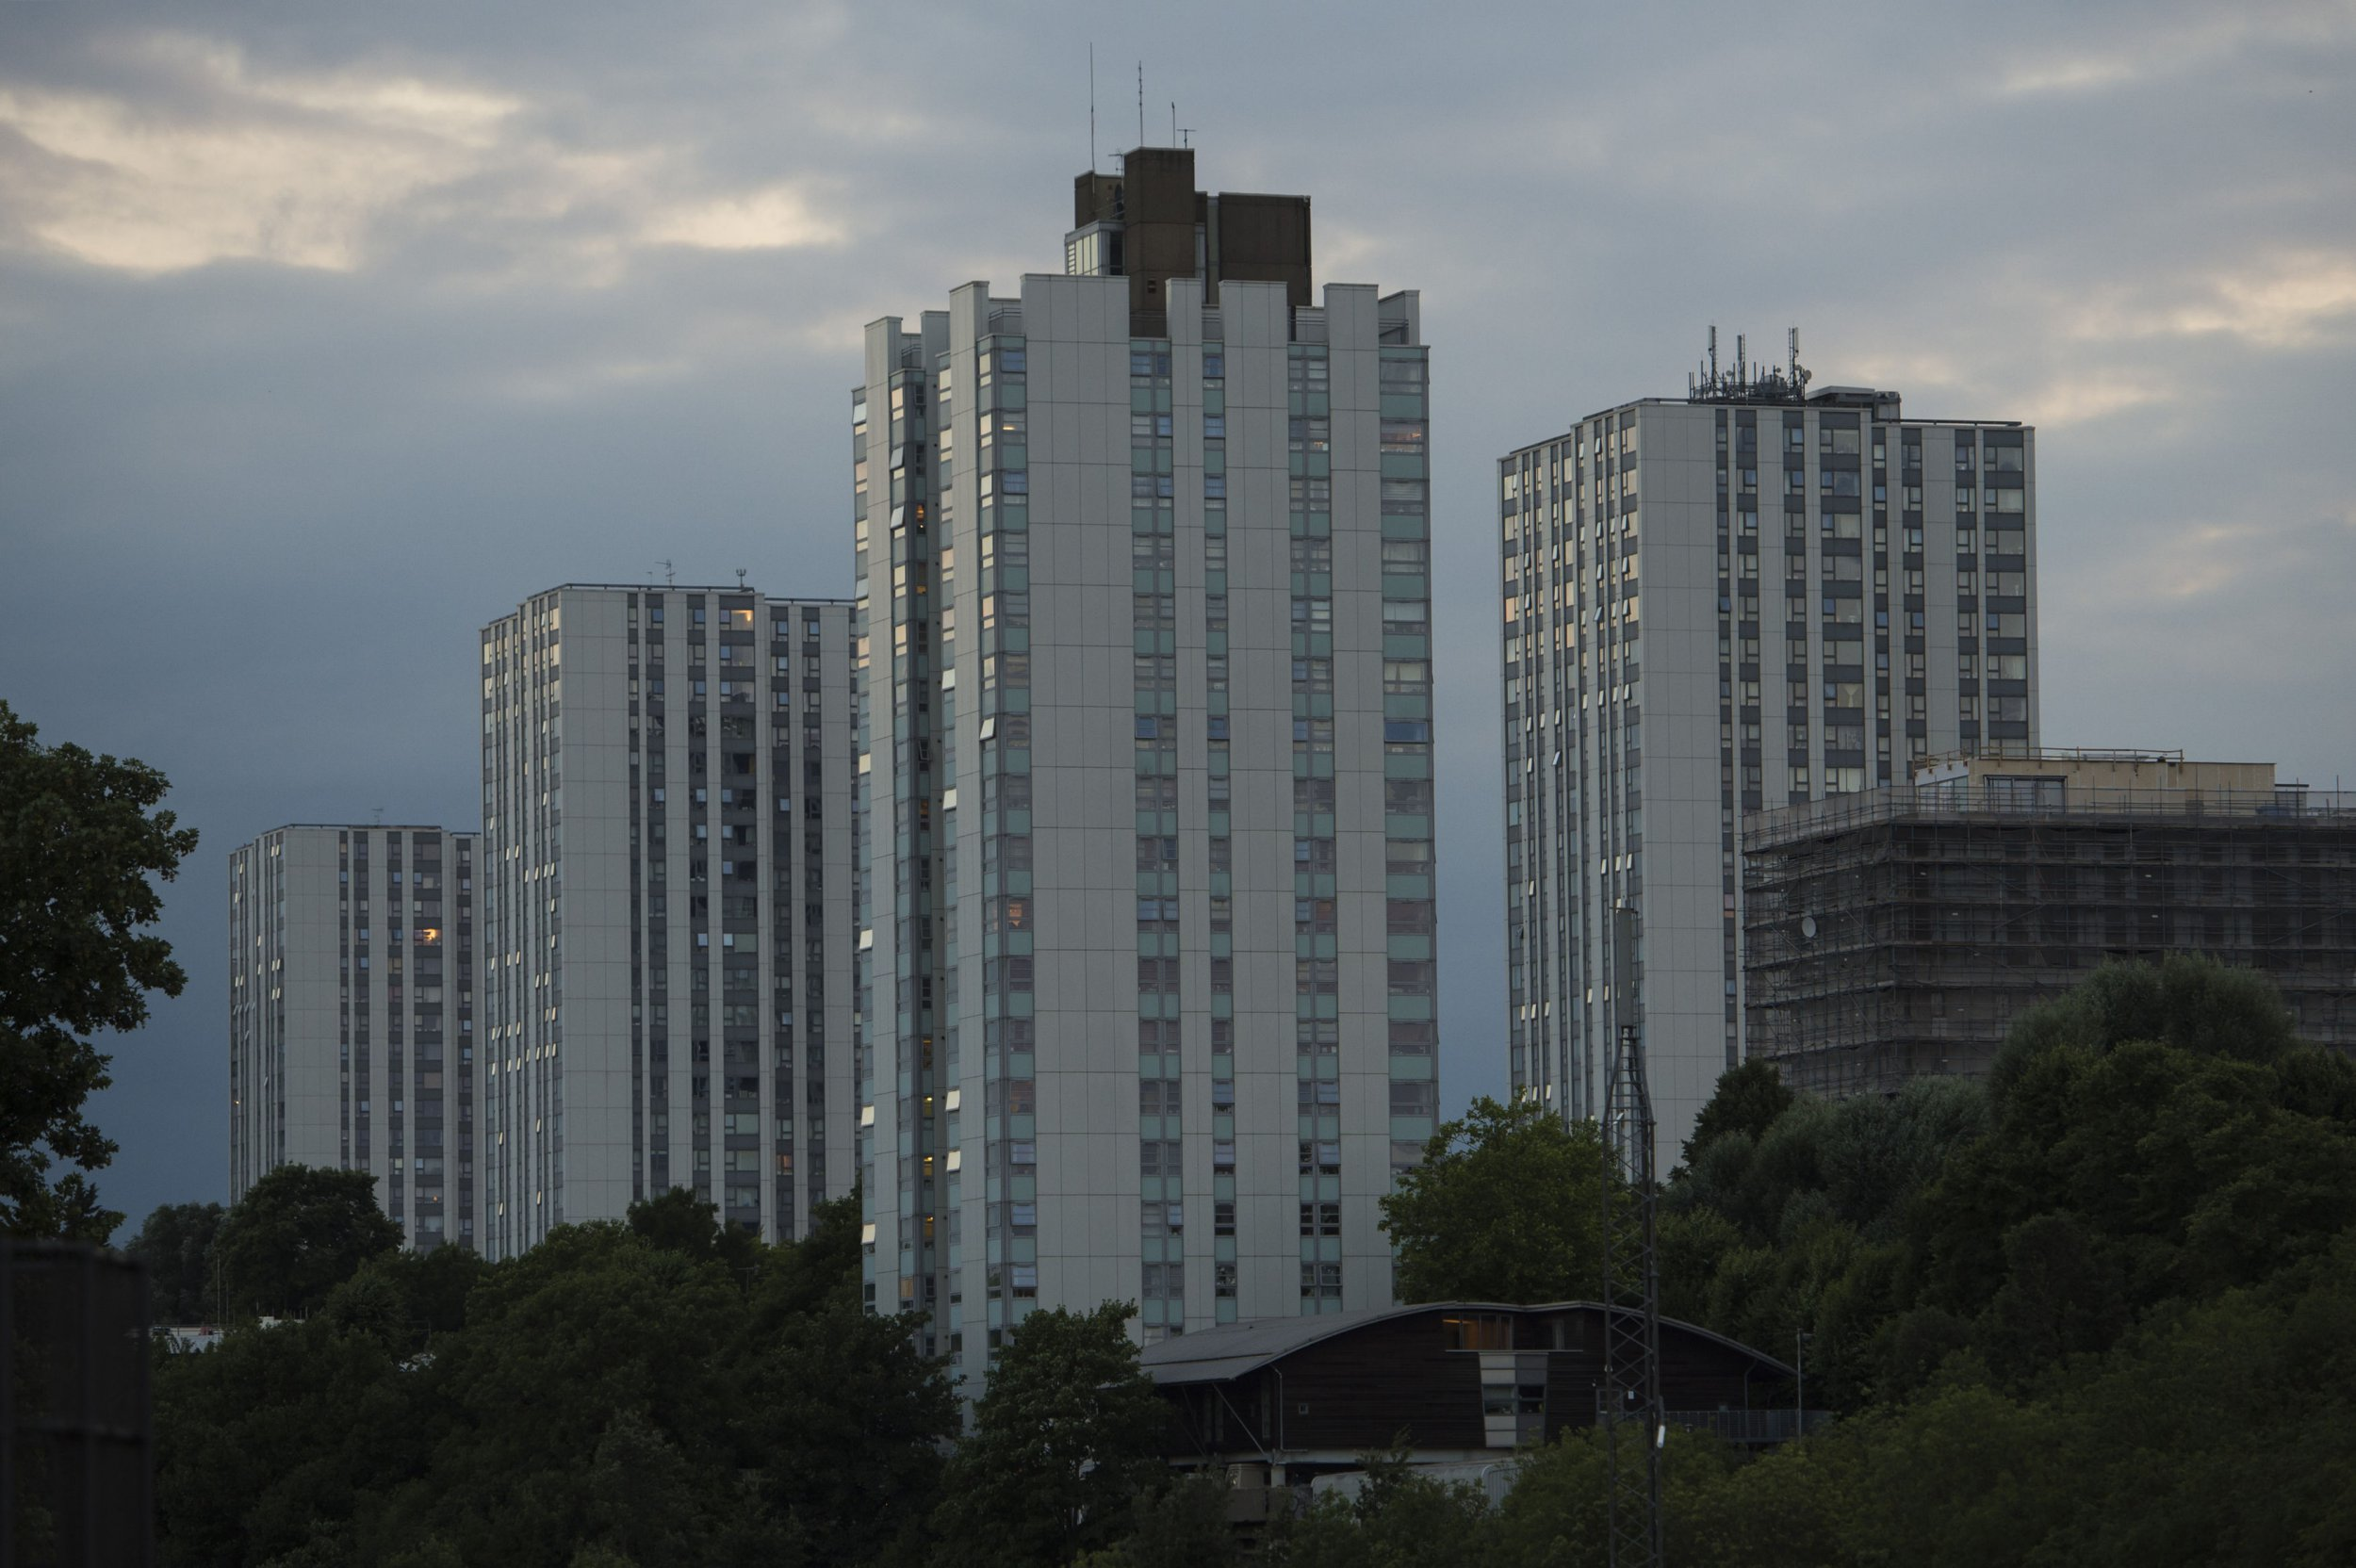 Tower blocks evacuated after Grenfell fire have 1,000 missing fire doors